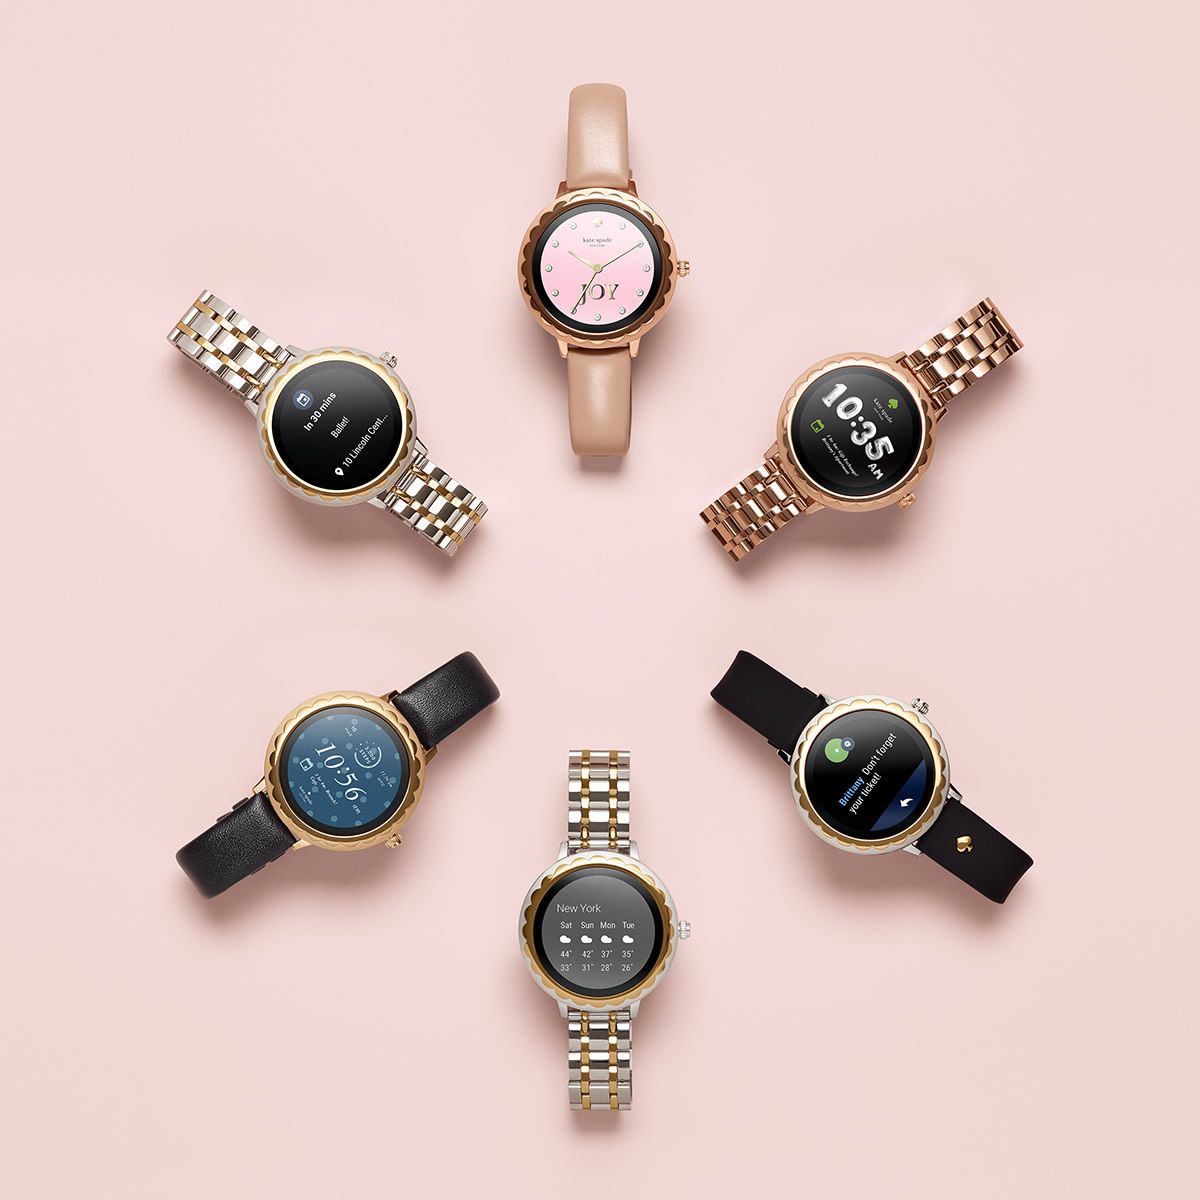 674ab7470f1a9 Kate Spade Watches - Macy's